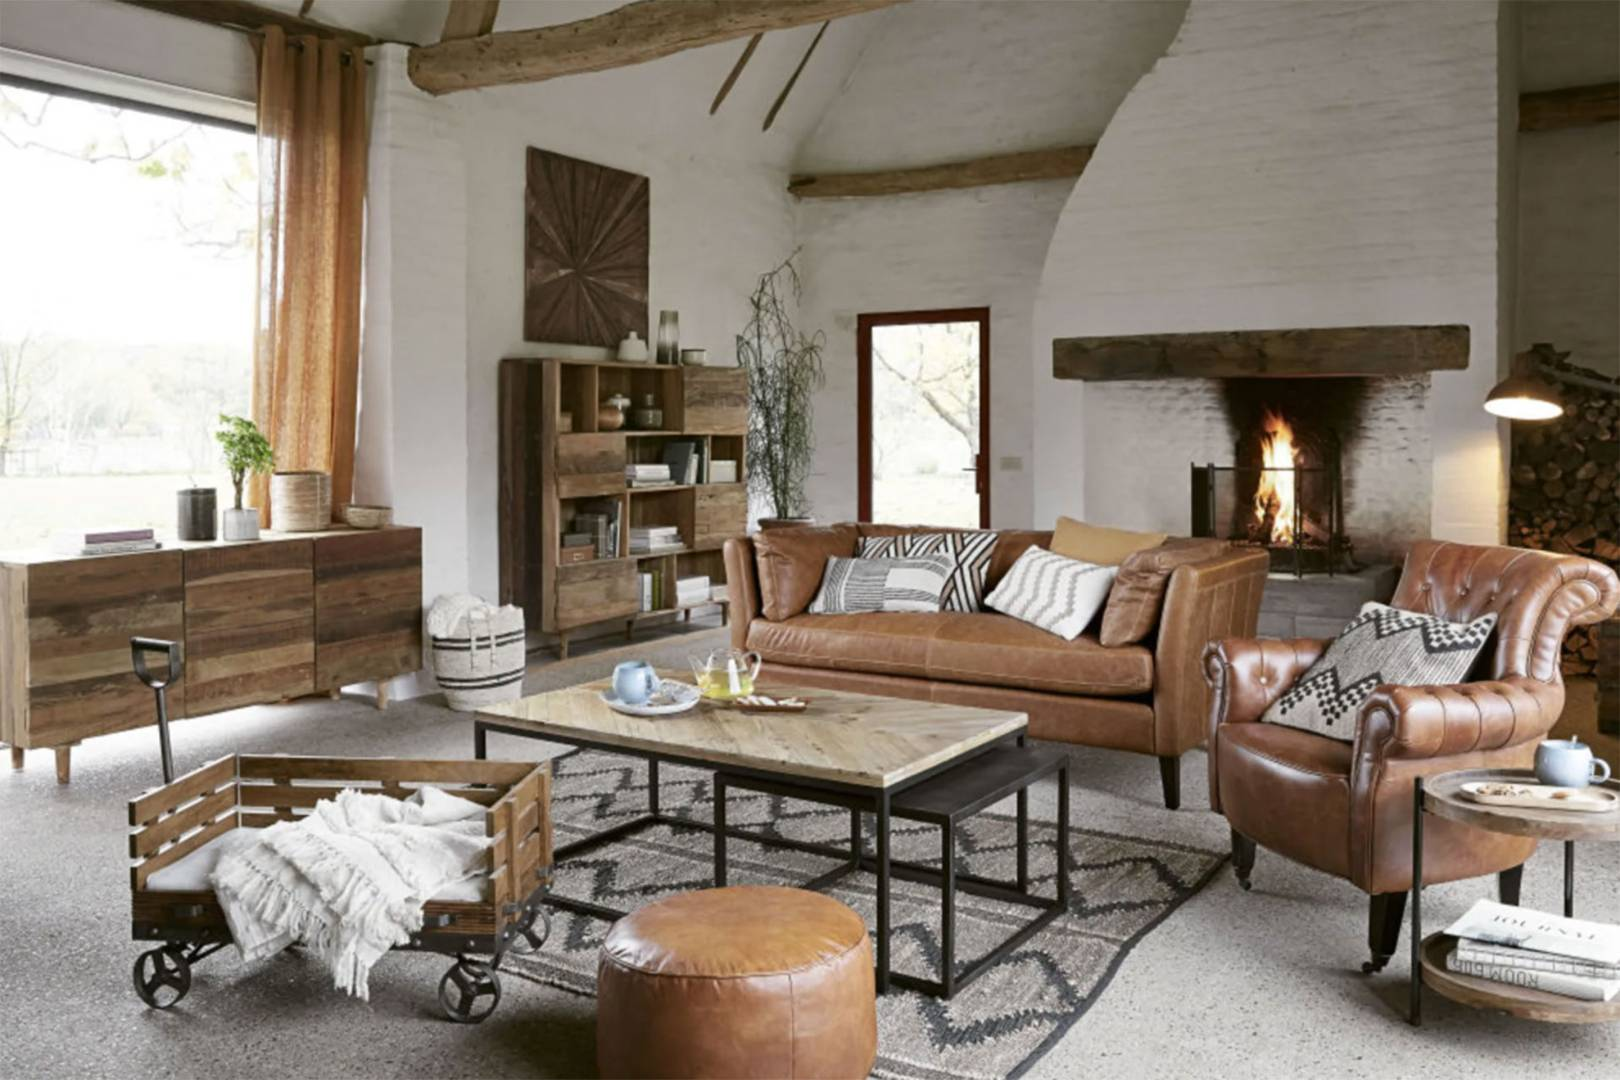 13 Best Online Furniture Stores Interiors Homeware For Every Budget Glamour Uk